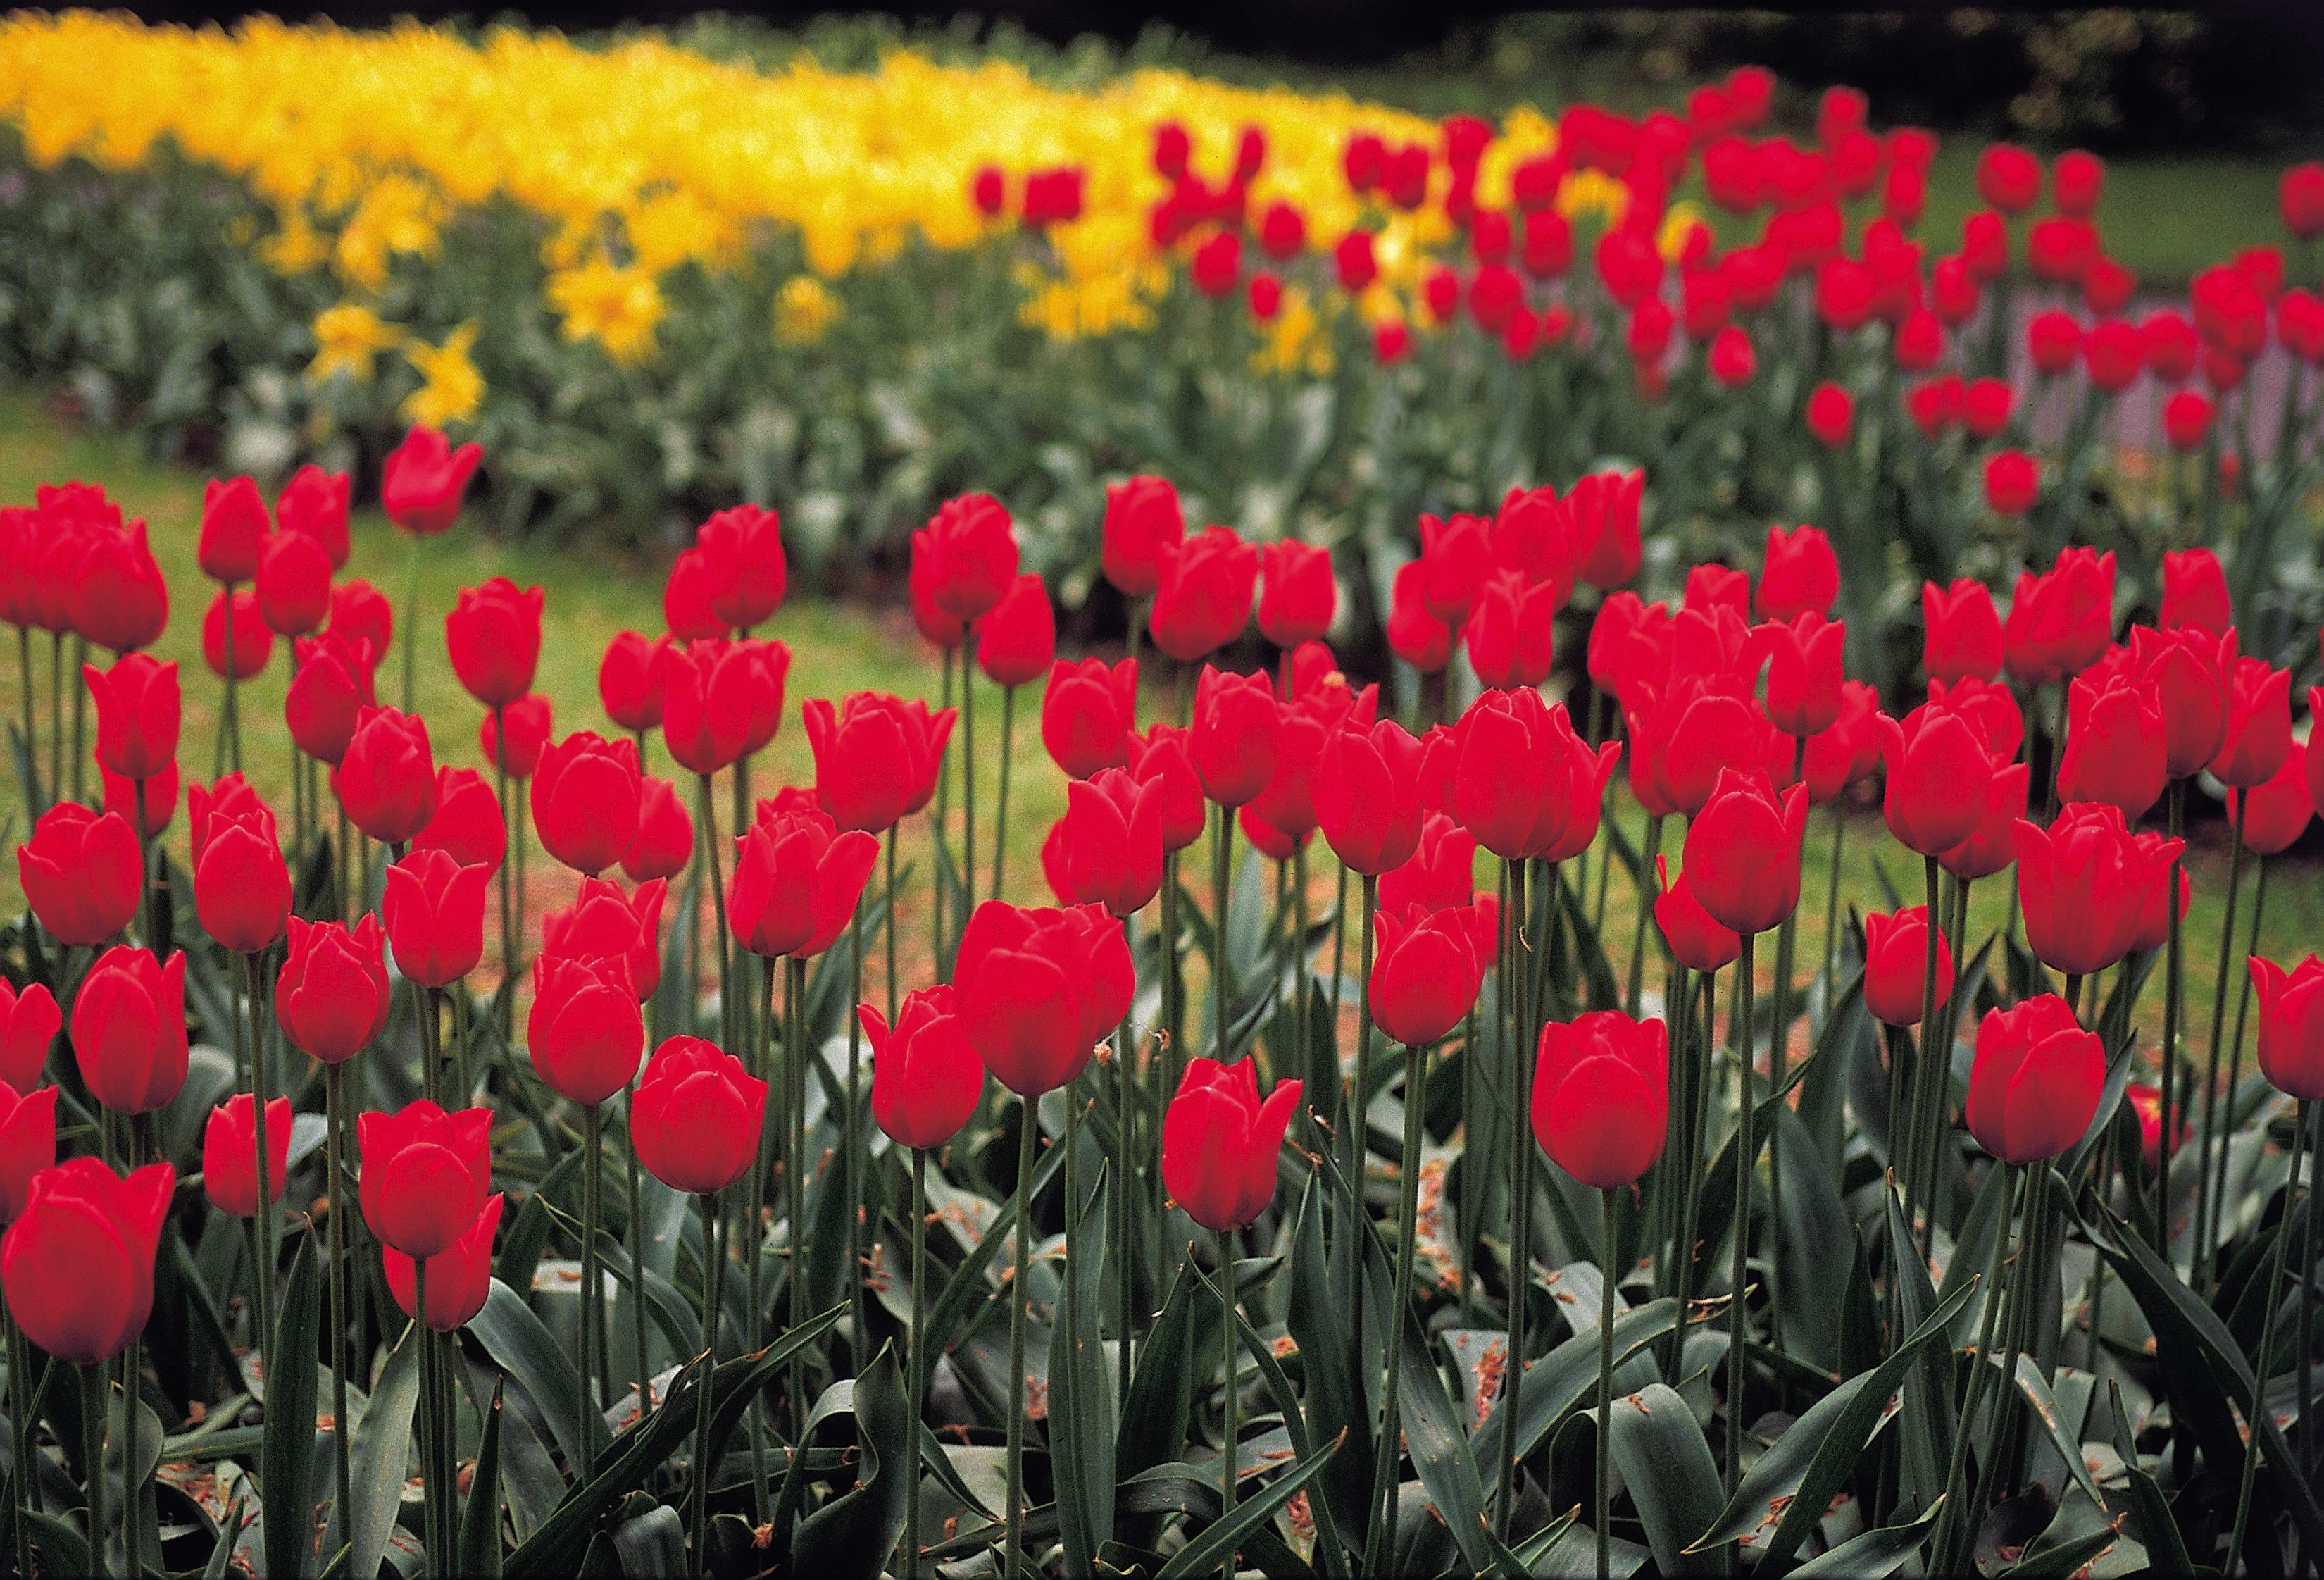 Flower beds containing a mix of red and yellow tulips around a grass lawn.